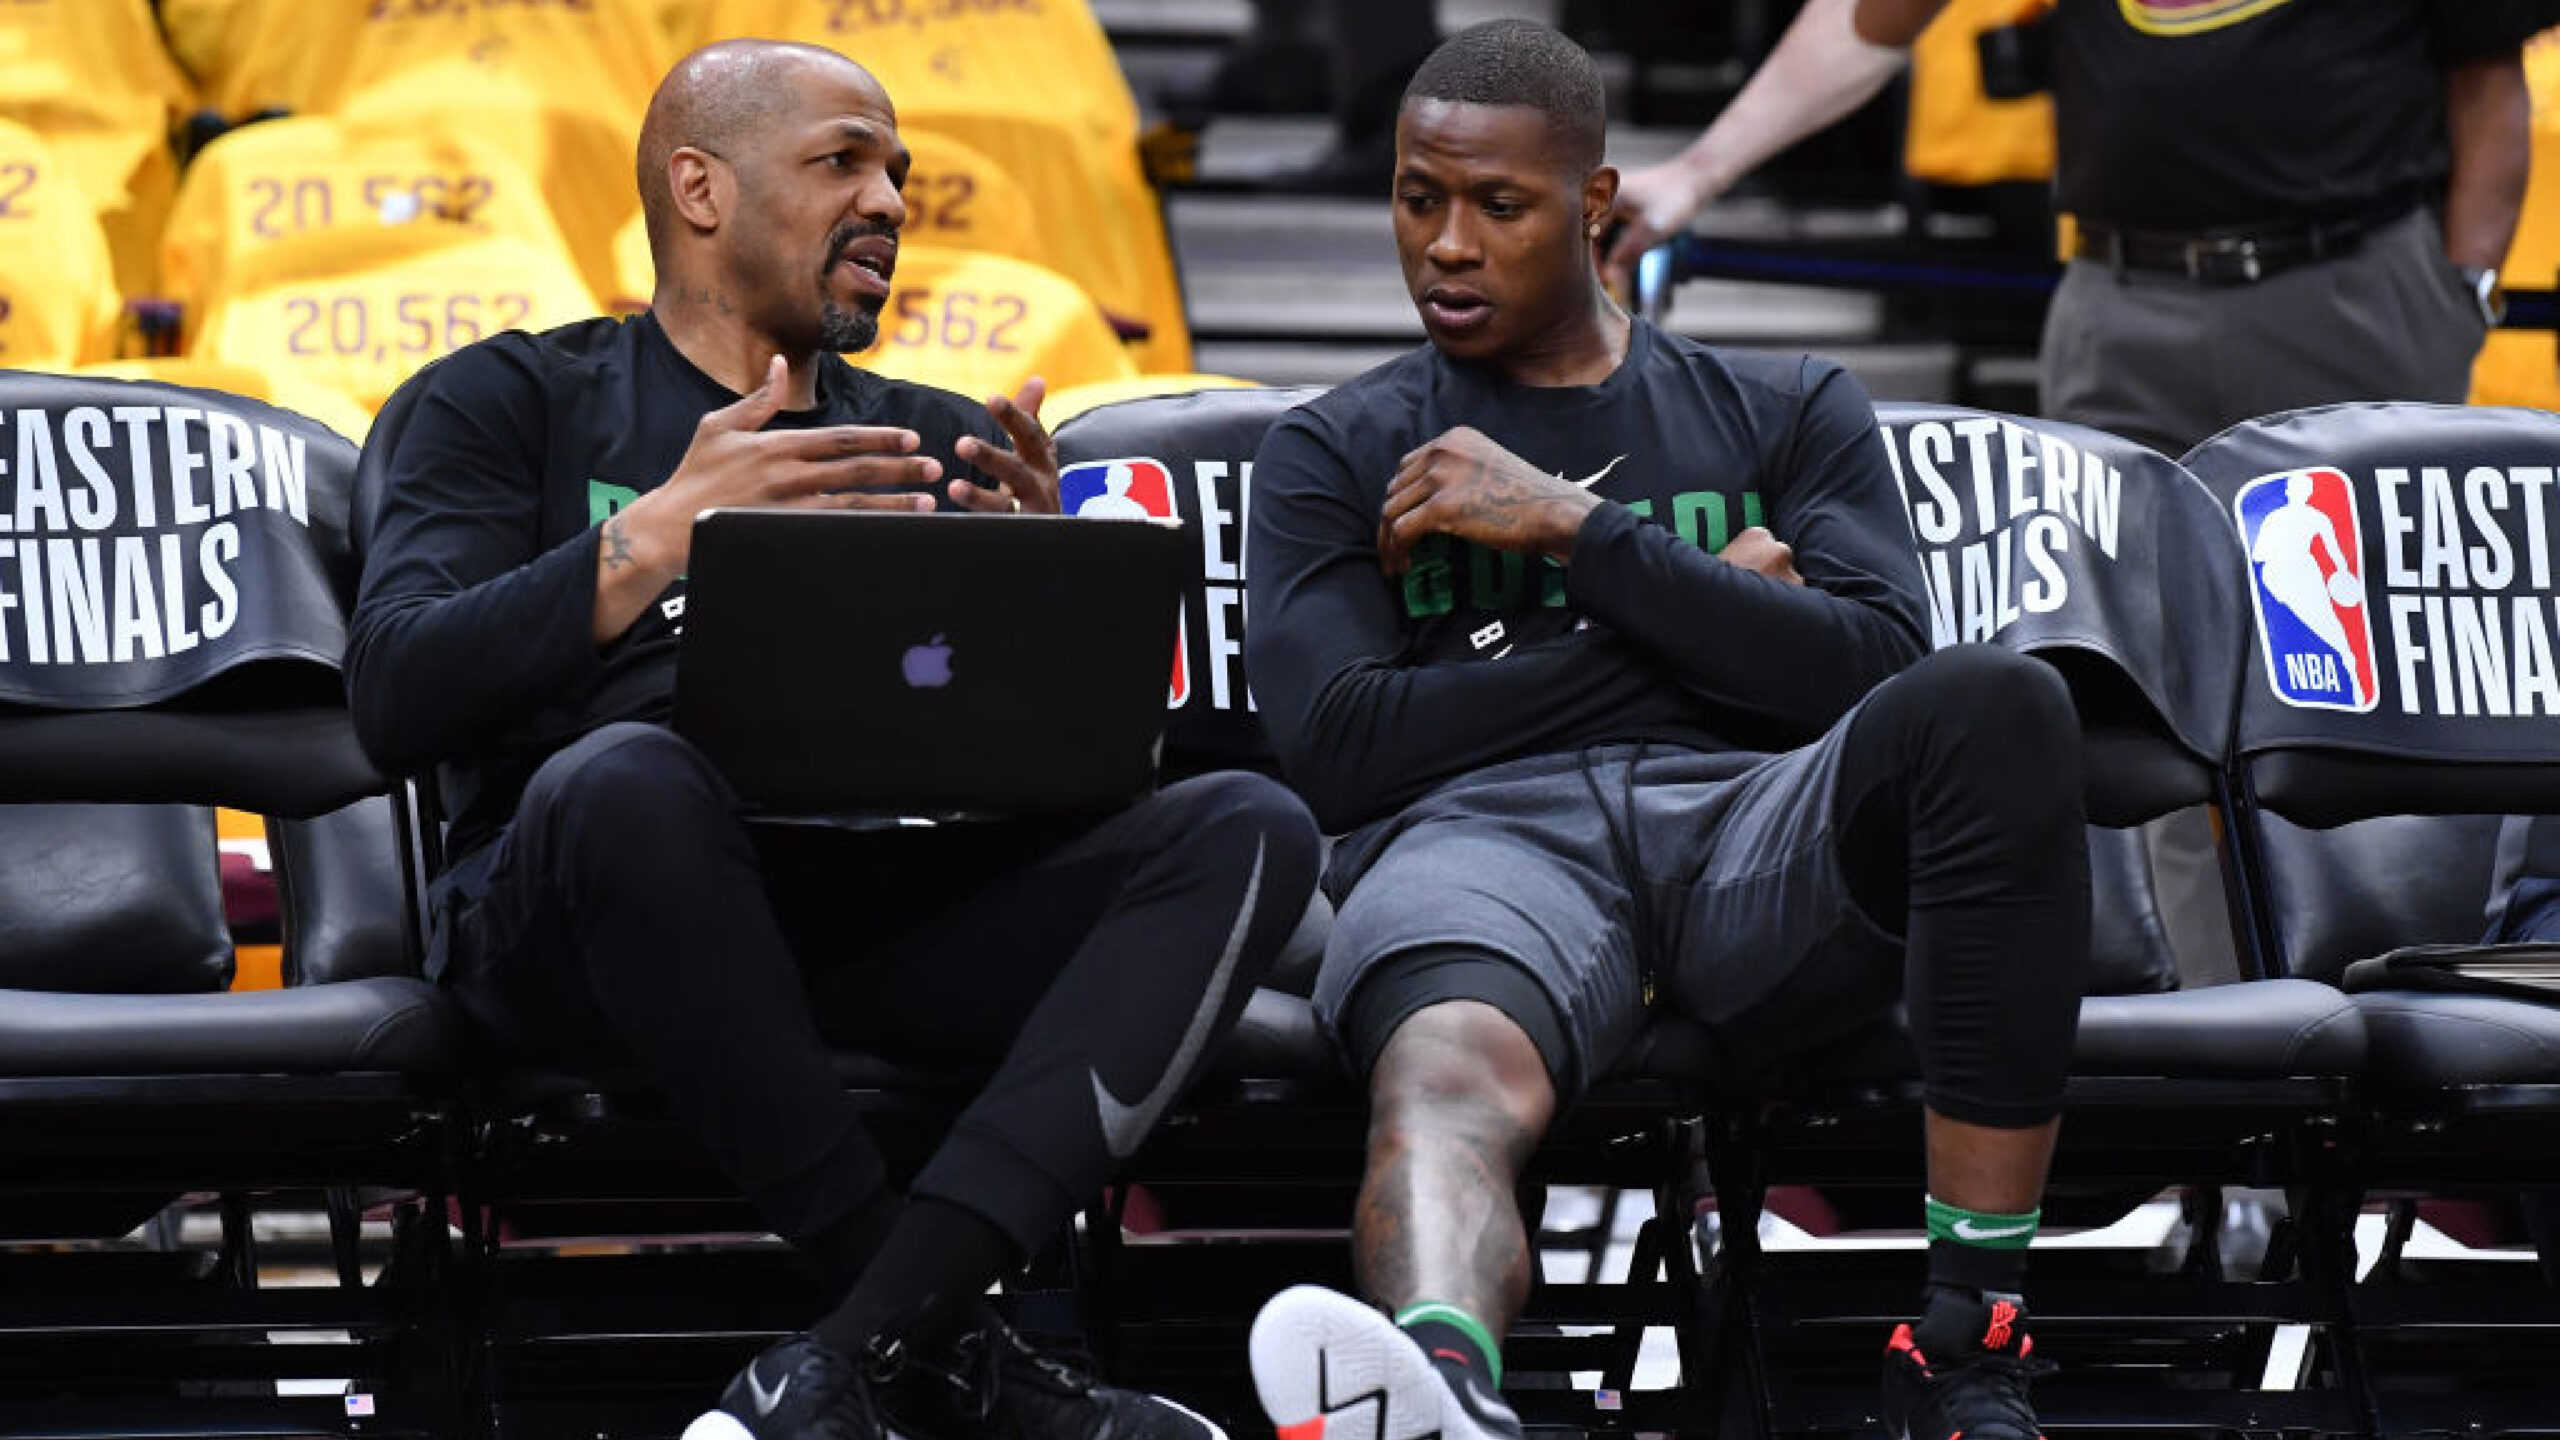 CLEVELAND, OH - MAY 21: Boston Celtics assistant coach Jerome Allen speaks to Terry Rozier #12 before Game Four of the 2018 NBA Eastern Conference Finals against the Cleveland Cavaliers at Quicken Loans Arena on May 21, 2018 in Cleveland, Ohio. (Photo by Jamie Sabau/Getty Images)